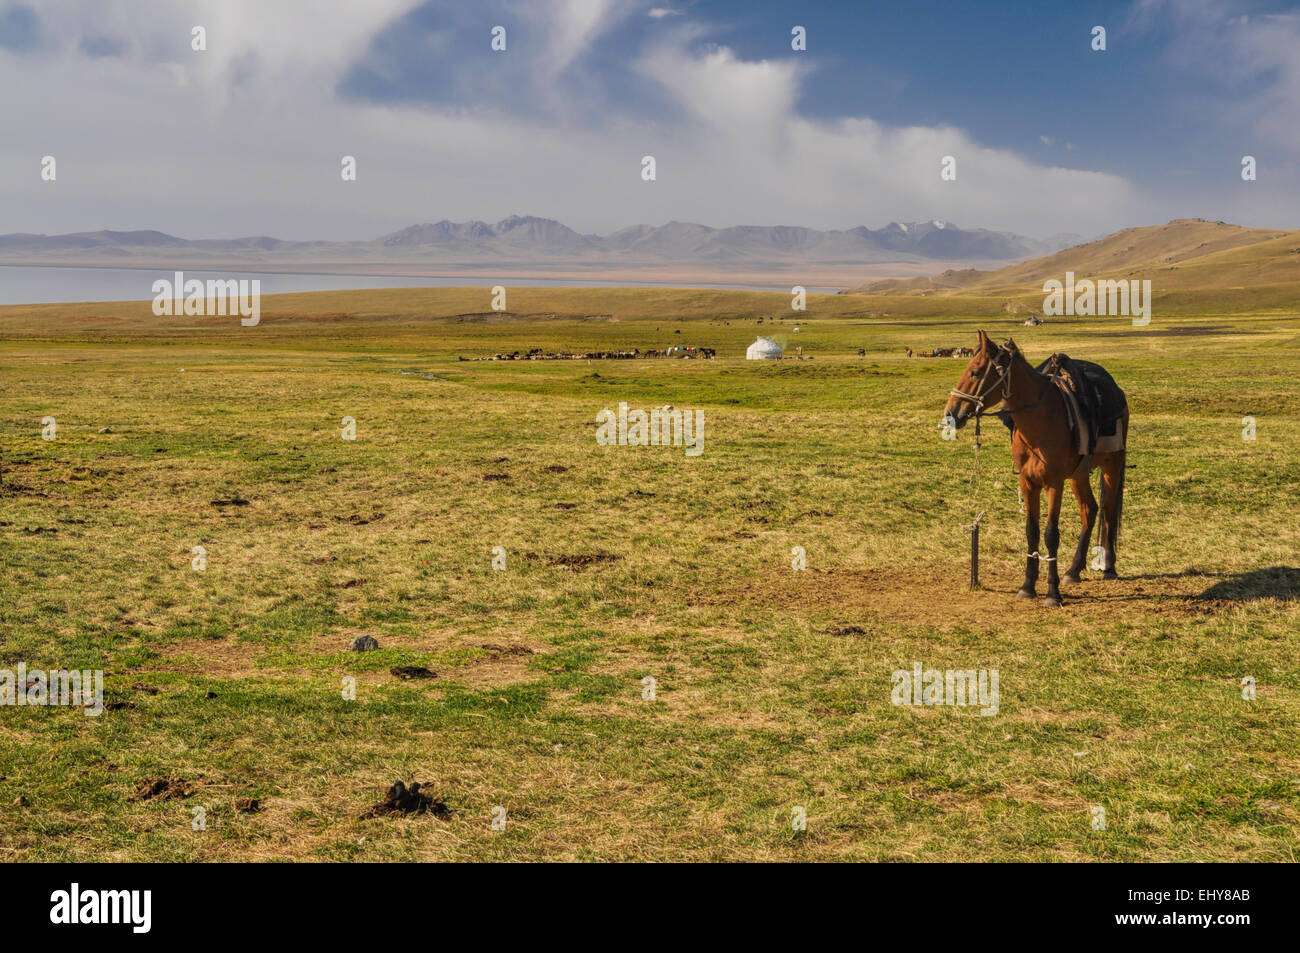 Horse on scenic grassy mountainous landscape in Kyrgyzstan - Stock Image